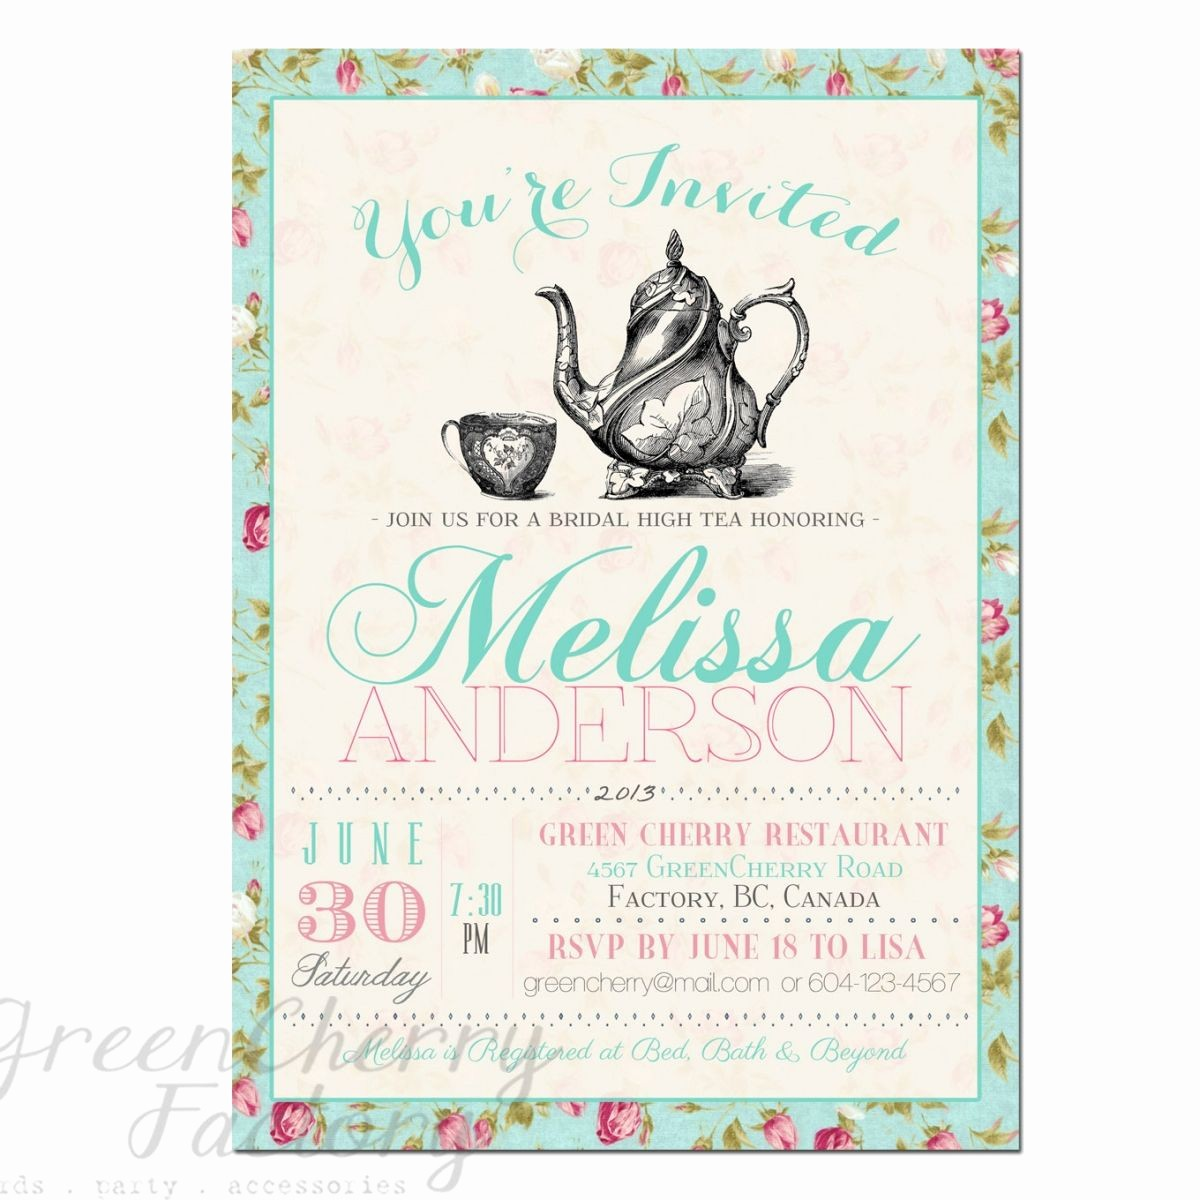 Free Printable Party Invitations Templates Awesome Tea Party Invitation Templates to Print